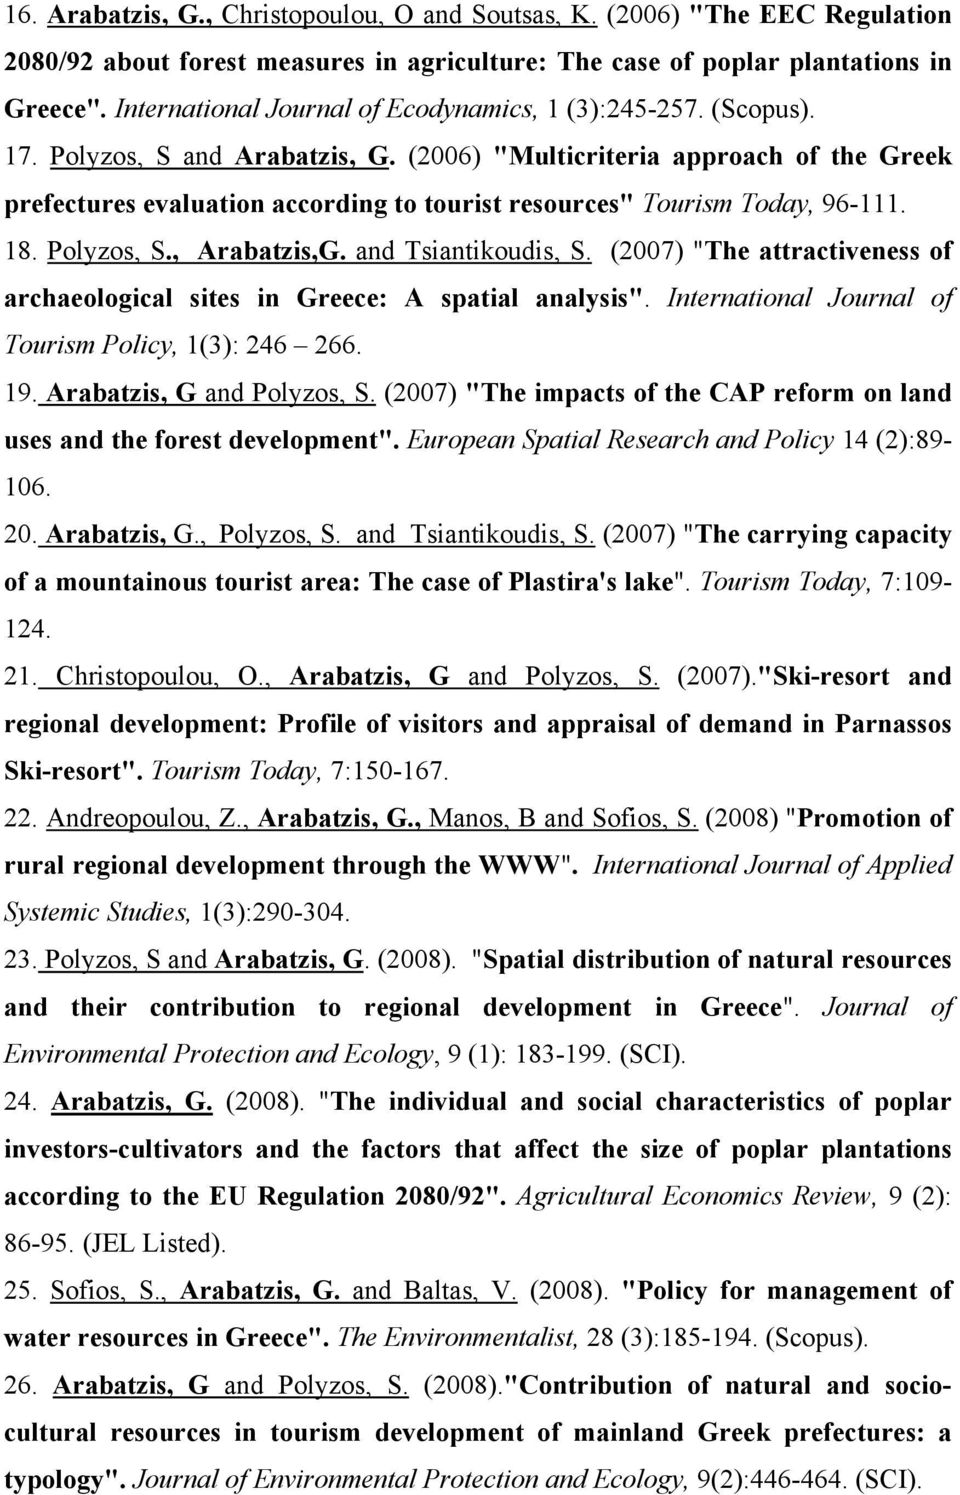 "(2006) ""Multicriteria approach of the Greek prefectures evaluation according to tourist resources"" Tourism Today, 96-111. 18. Polyzos, S., Arabatzis,G. and Tsiantikoudis, S."